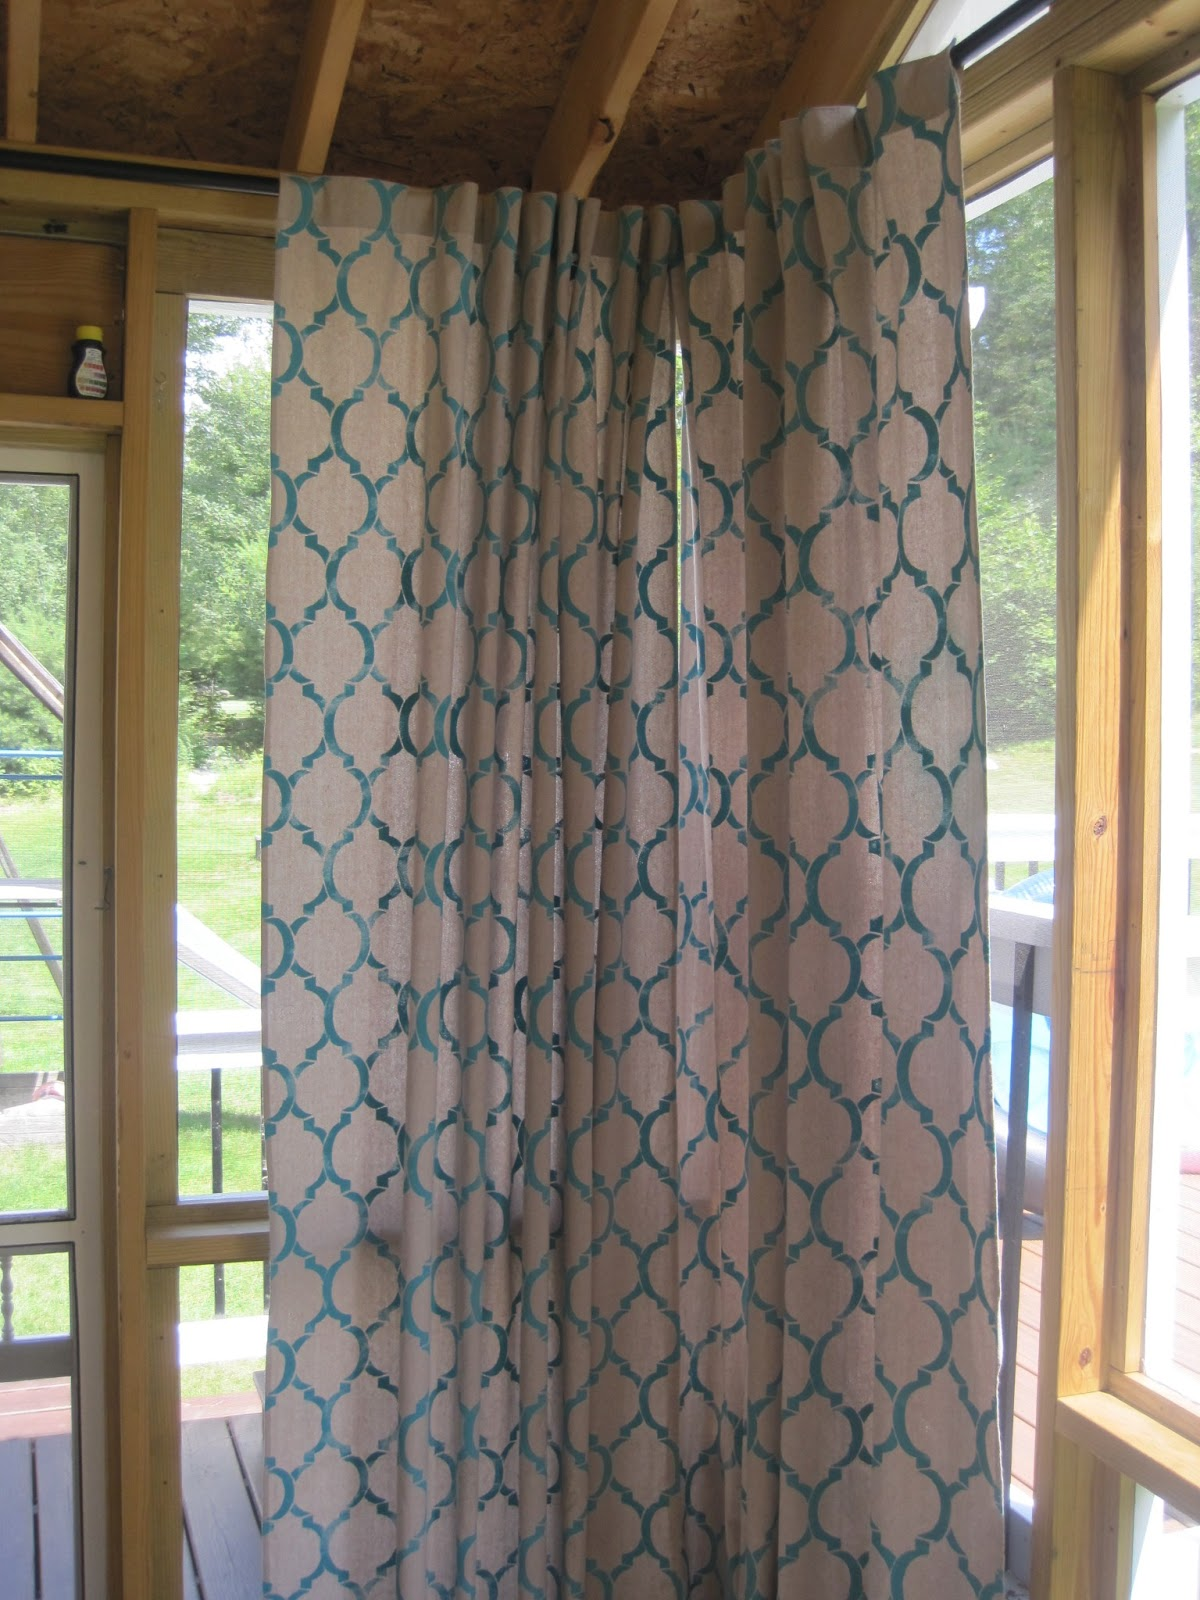 All Things Beautiful Diy Painter 39 S Drop Cloth Curtain Panels For Screen Room Patio